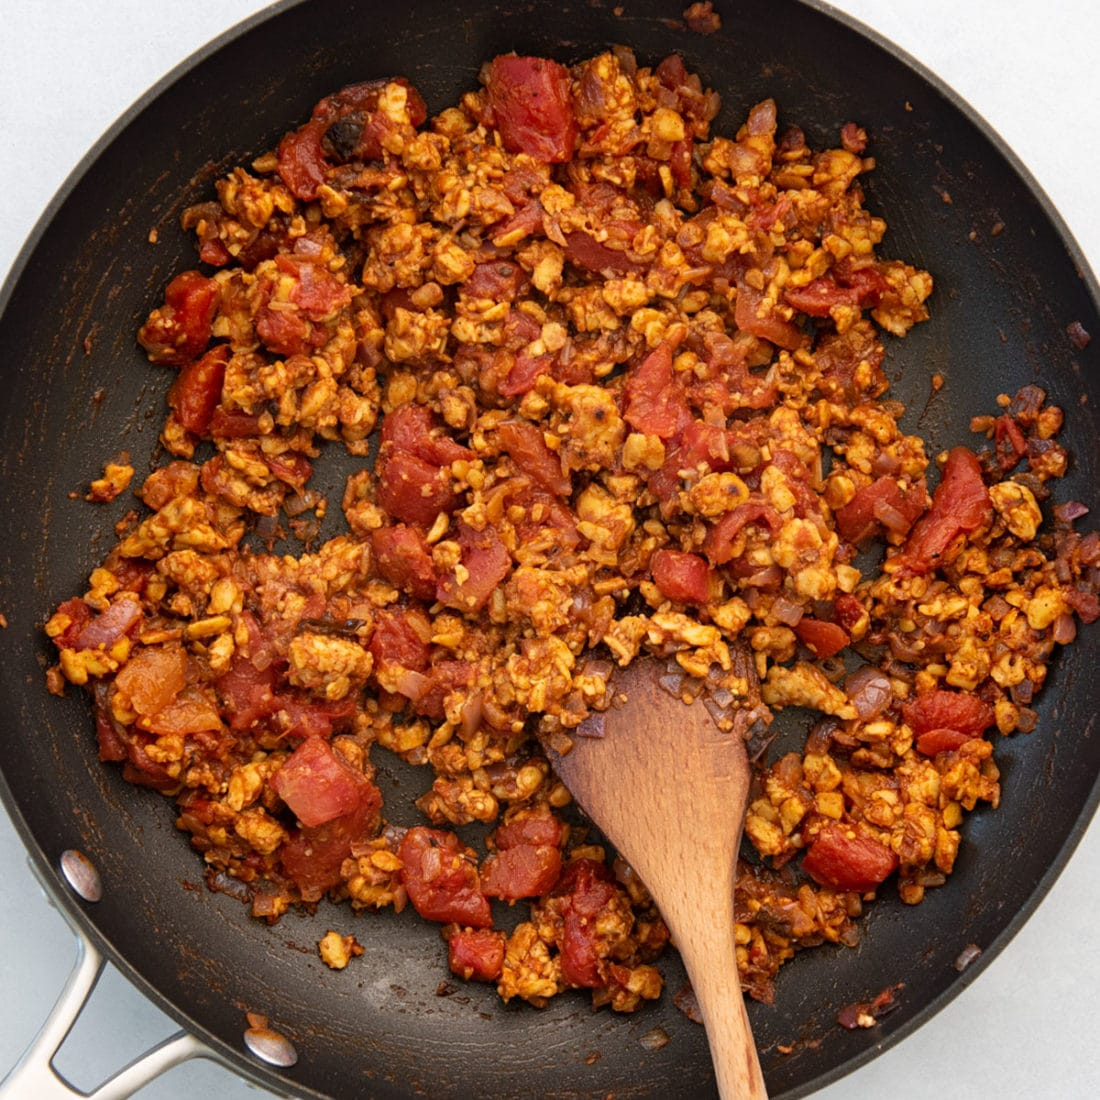 crumbled veggie meat with tomatoes and seasoning